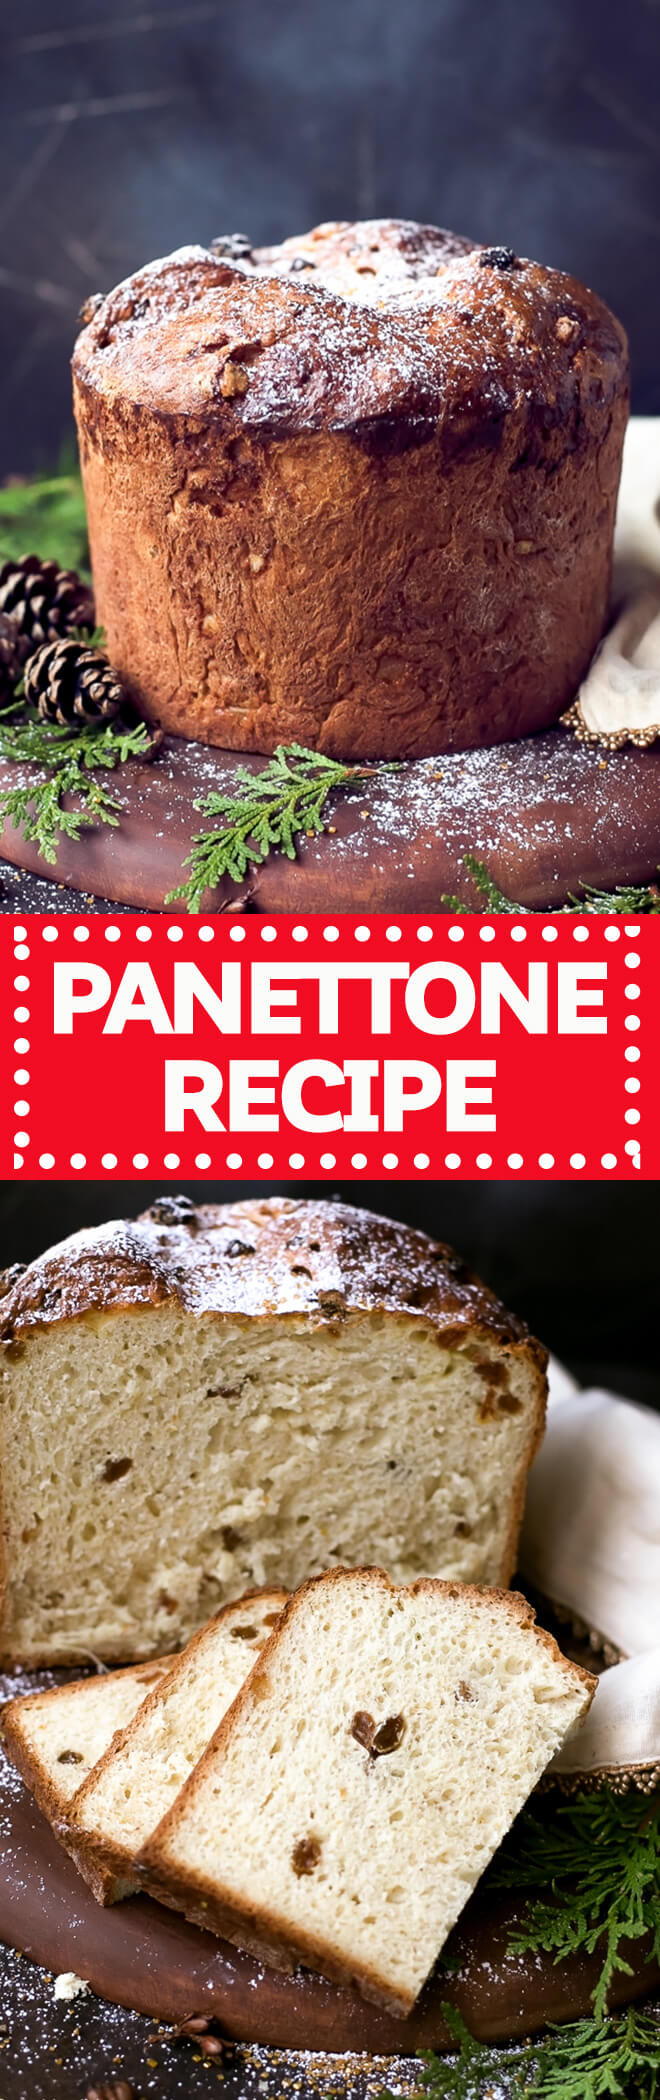 Easy Homemade Italian Christmas Bread Panettone Recipe - perfect for the holidays! This Panettone Recipe does require some planning, but if you follow my instructions, you'll end up with a sweet, puffy and festive holiday bread.